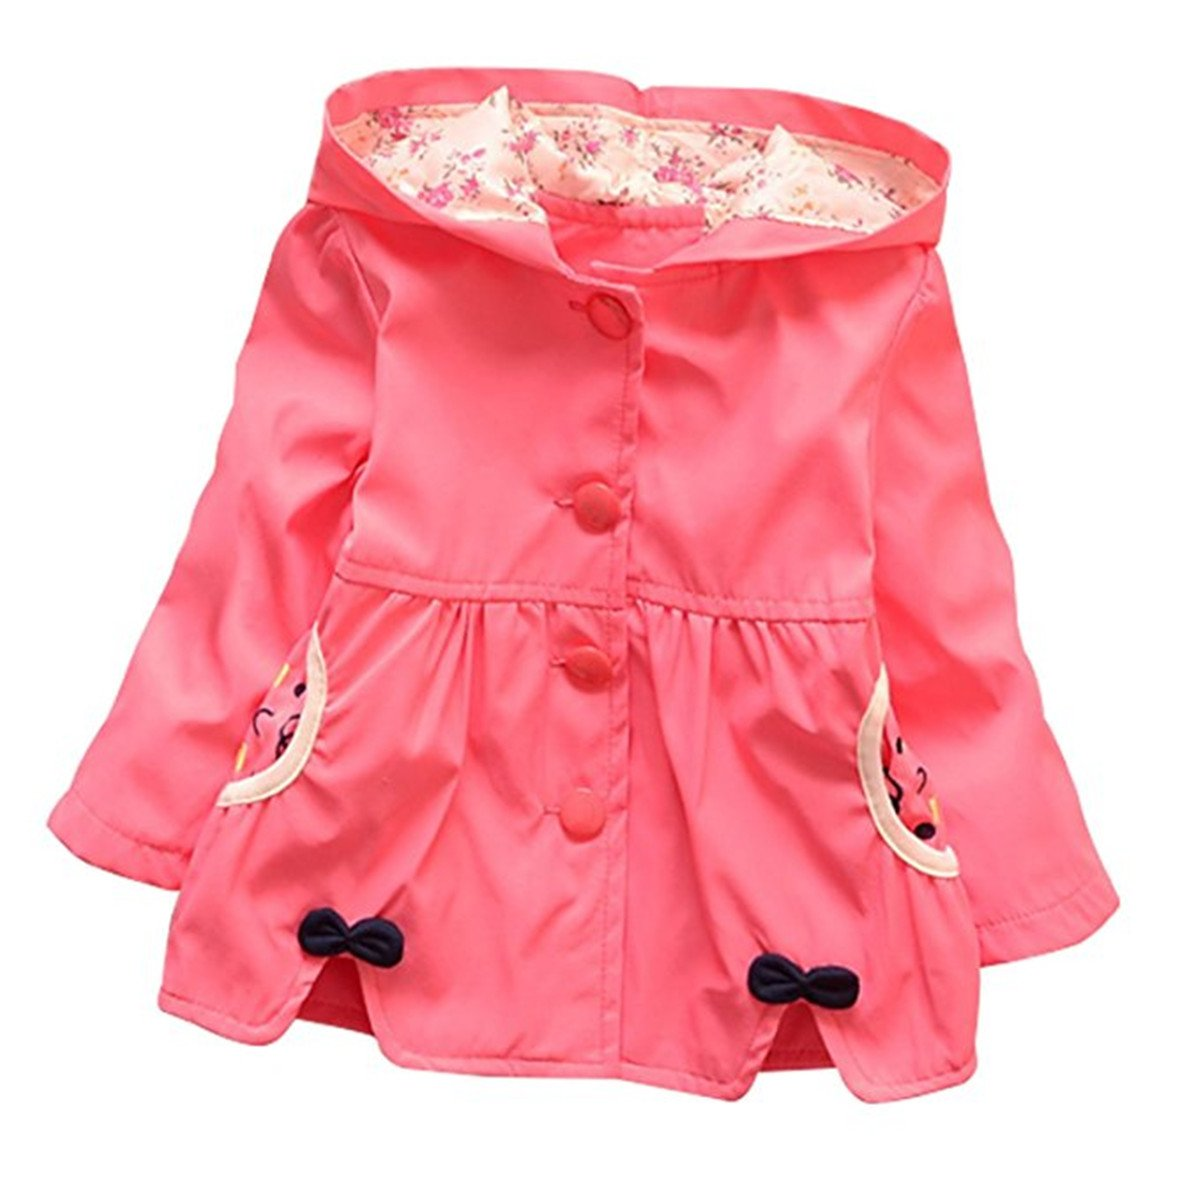 FAIRYRAIN Baby Kid Little Girls Spring Fall Coat Smiling Face Hooded Jacket Coat Outerwear